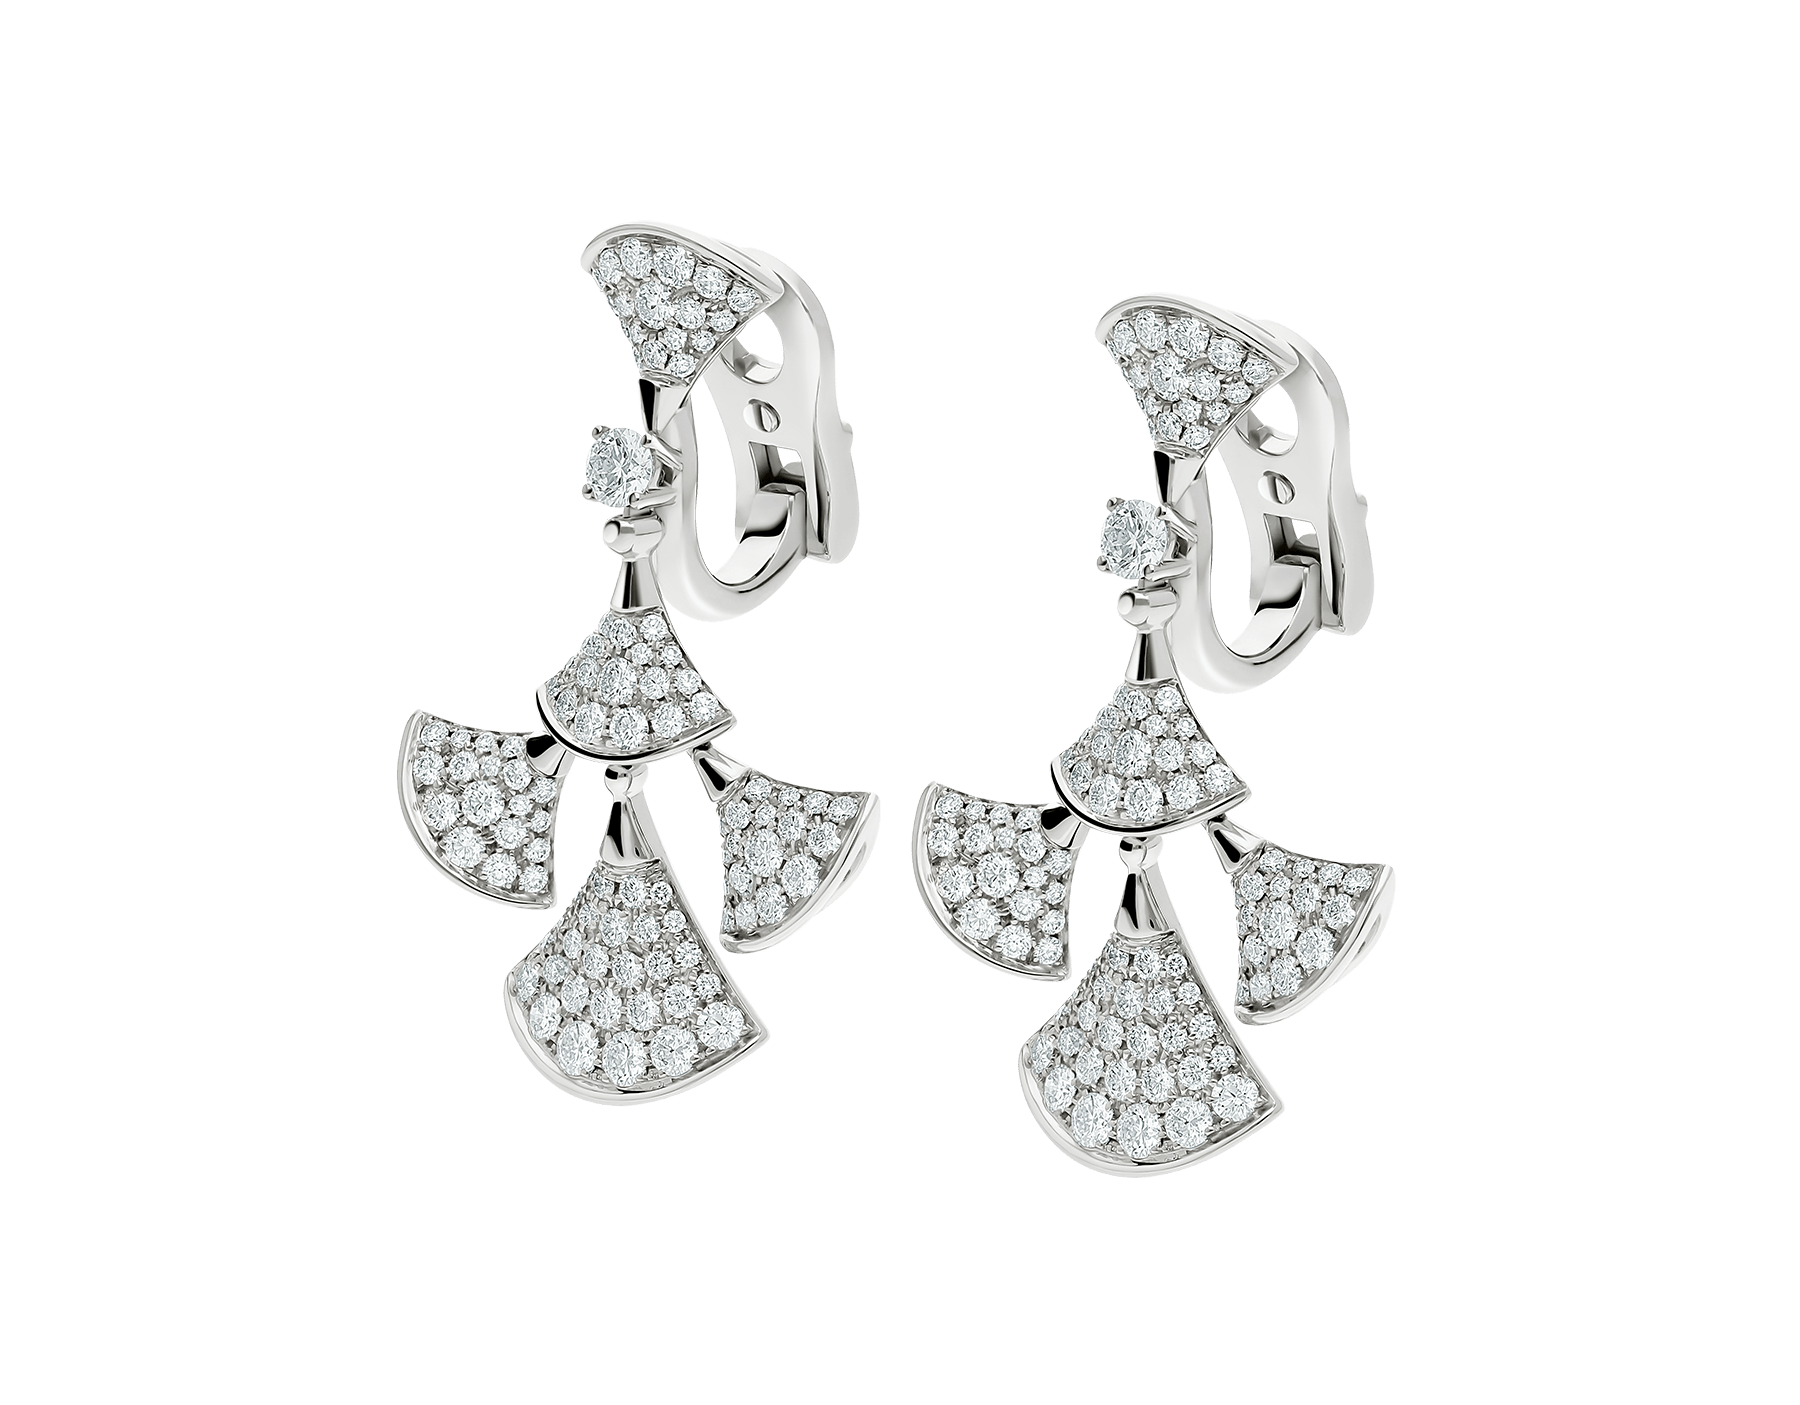 DIVAS' DREAM earrings in white gold, set with a diamond and full pavé diamonds. 352809 image 2